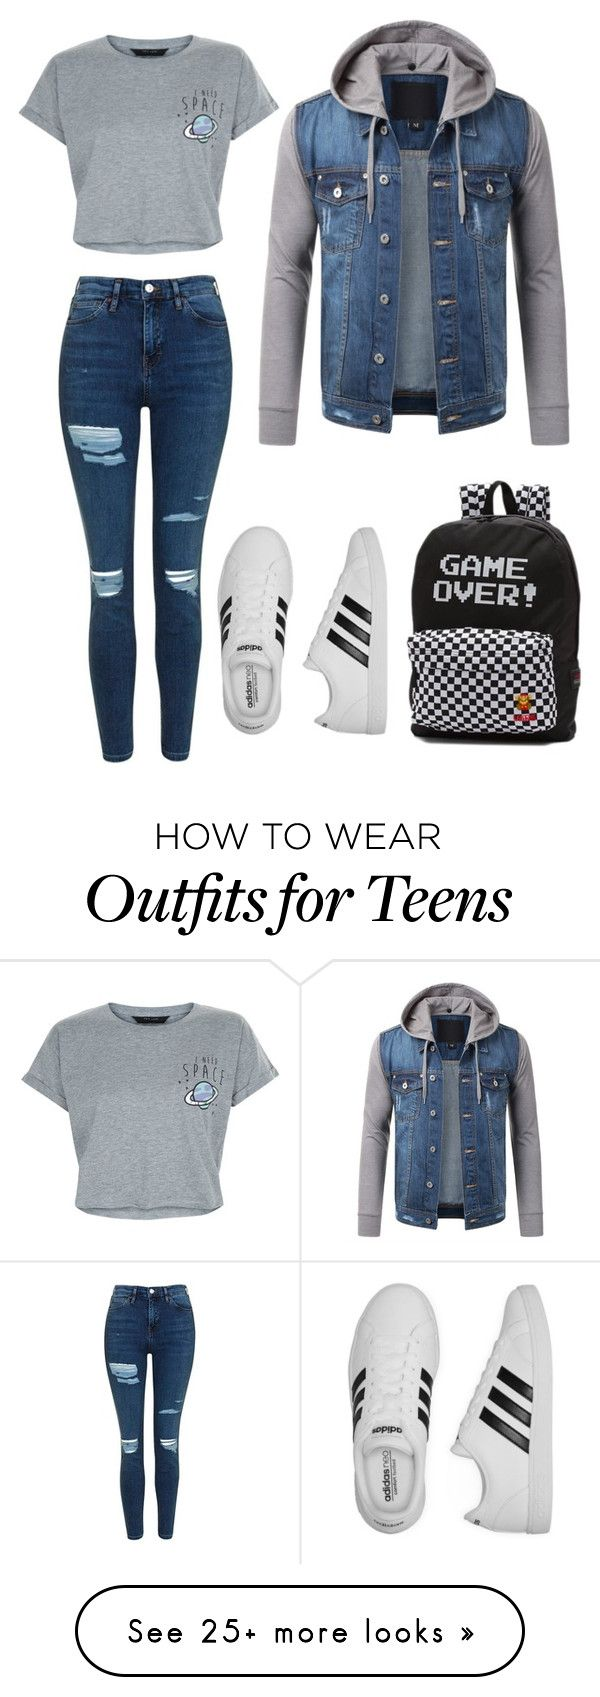 """Untitled #5"" by sonumagar on Polyvore featuring New Look, Topshop, adidas and Vans"